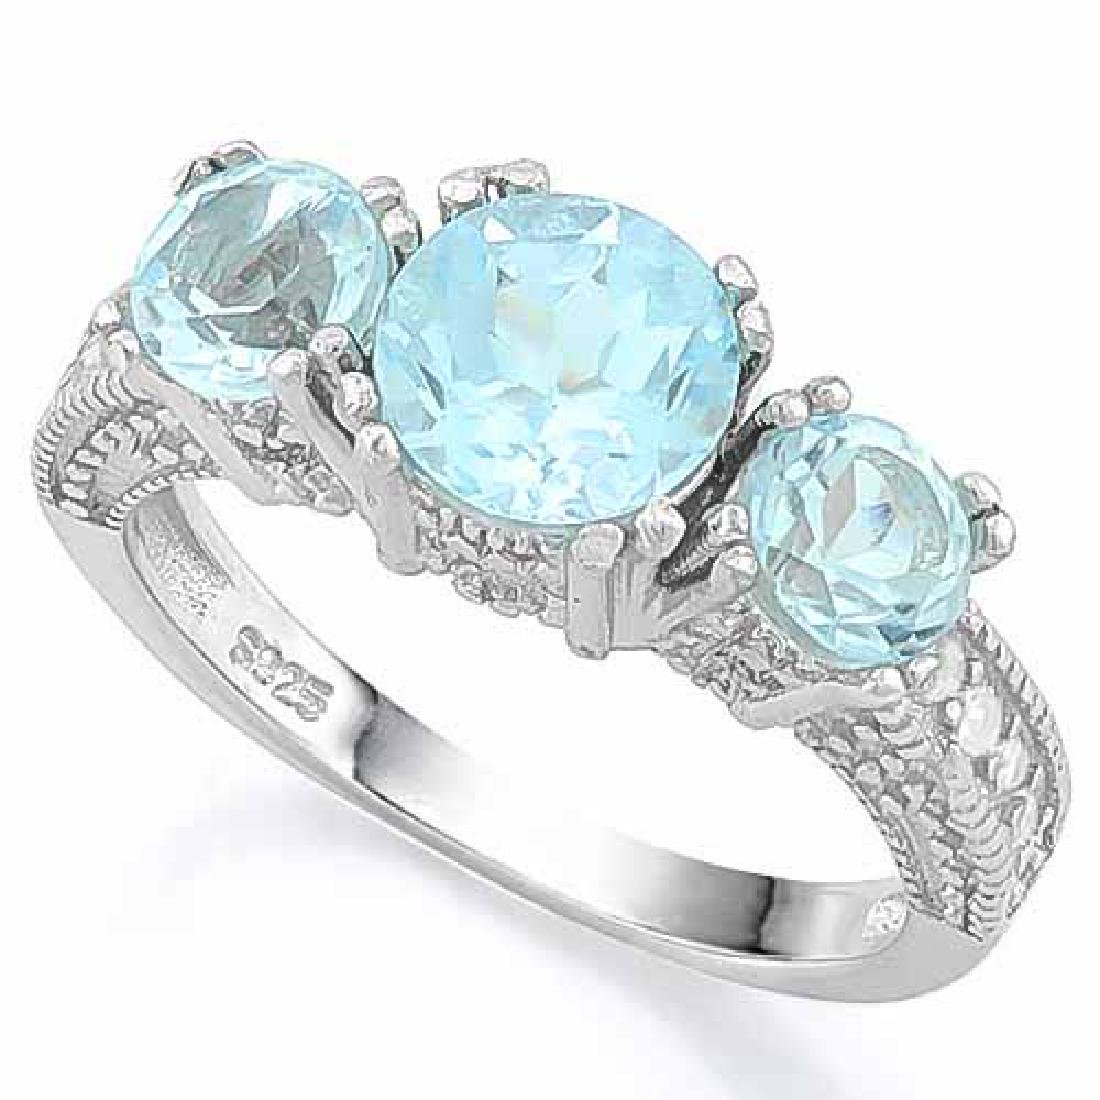 BABY SWISS BLUE TOPAZ 925 STERLING SILVER RING